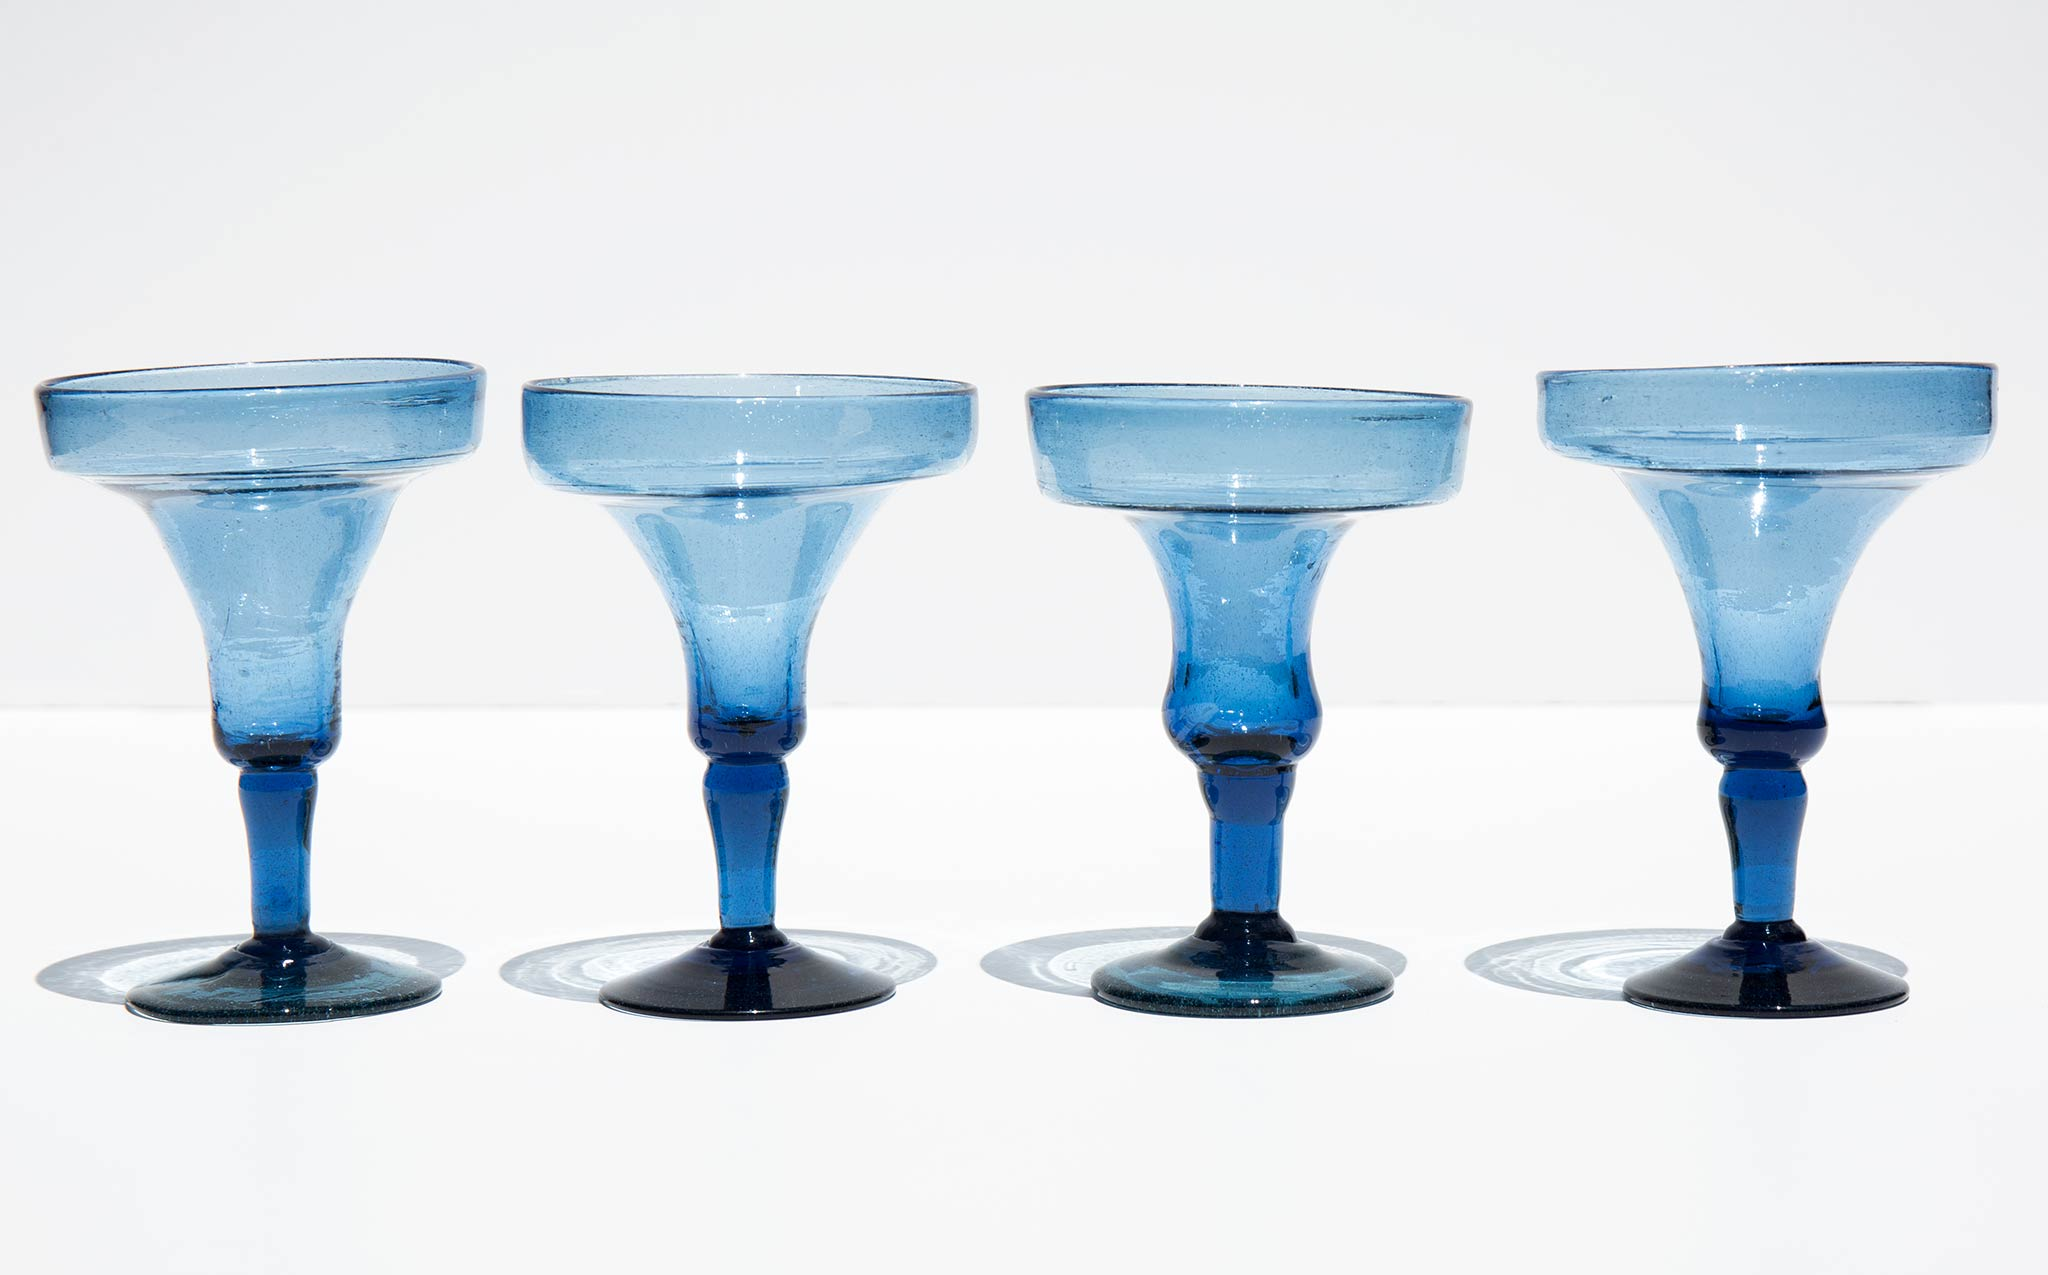 Pacific Blue Margarita Glasses